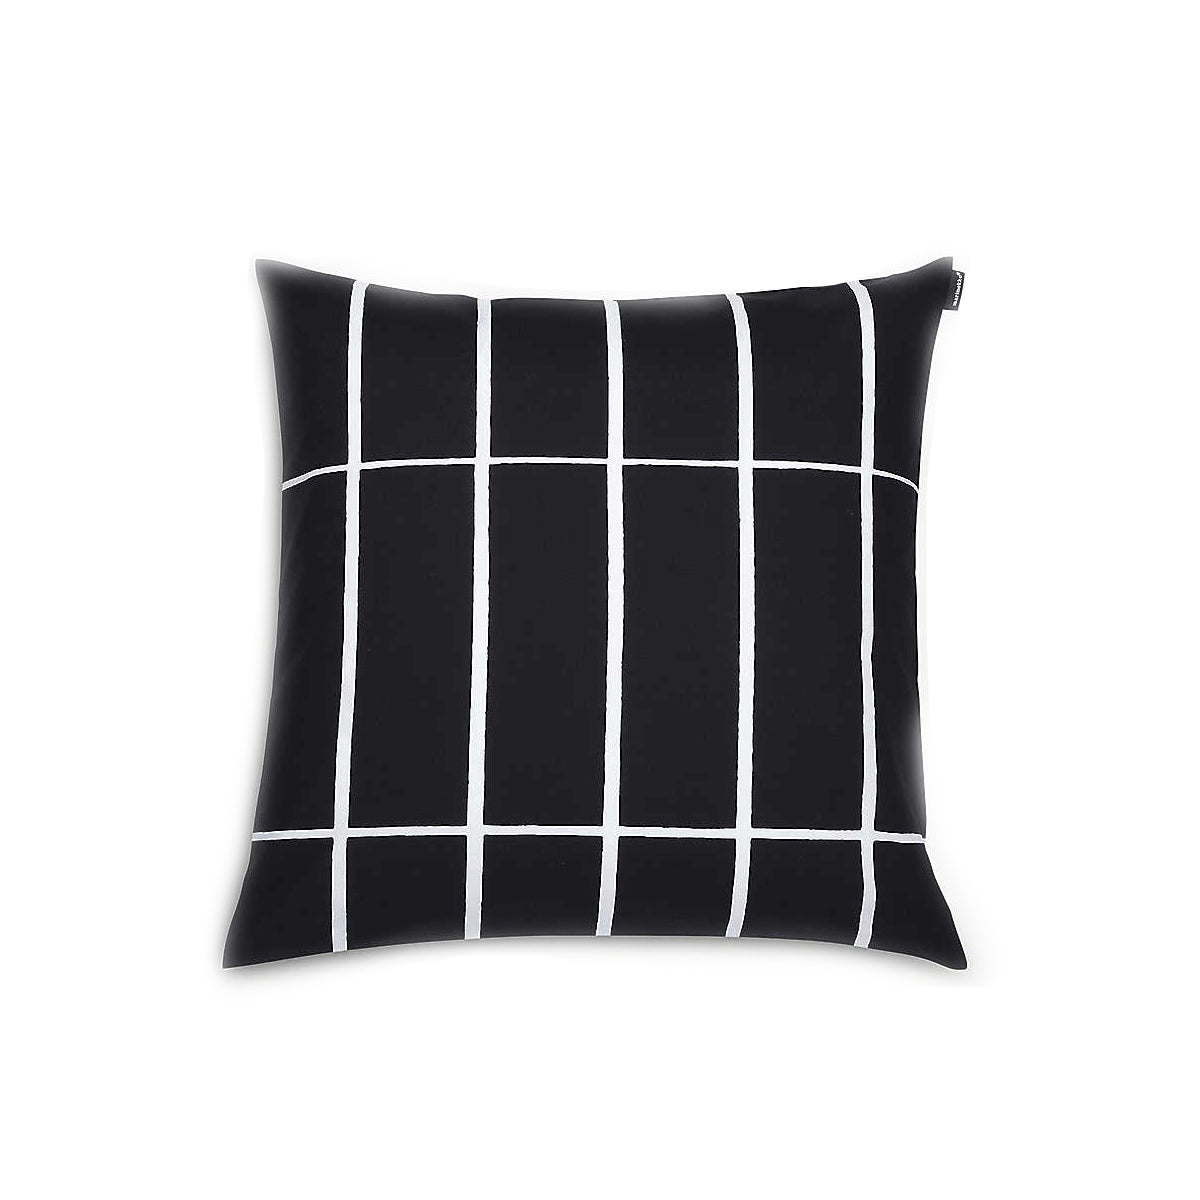 Tiiliskivi Cushion Cover